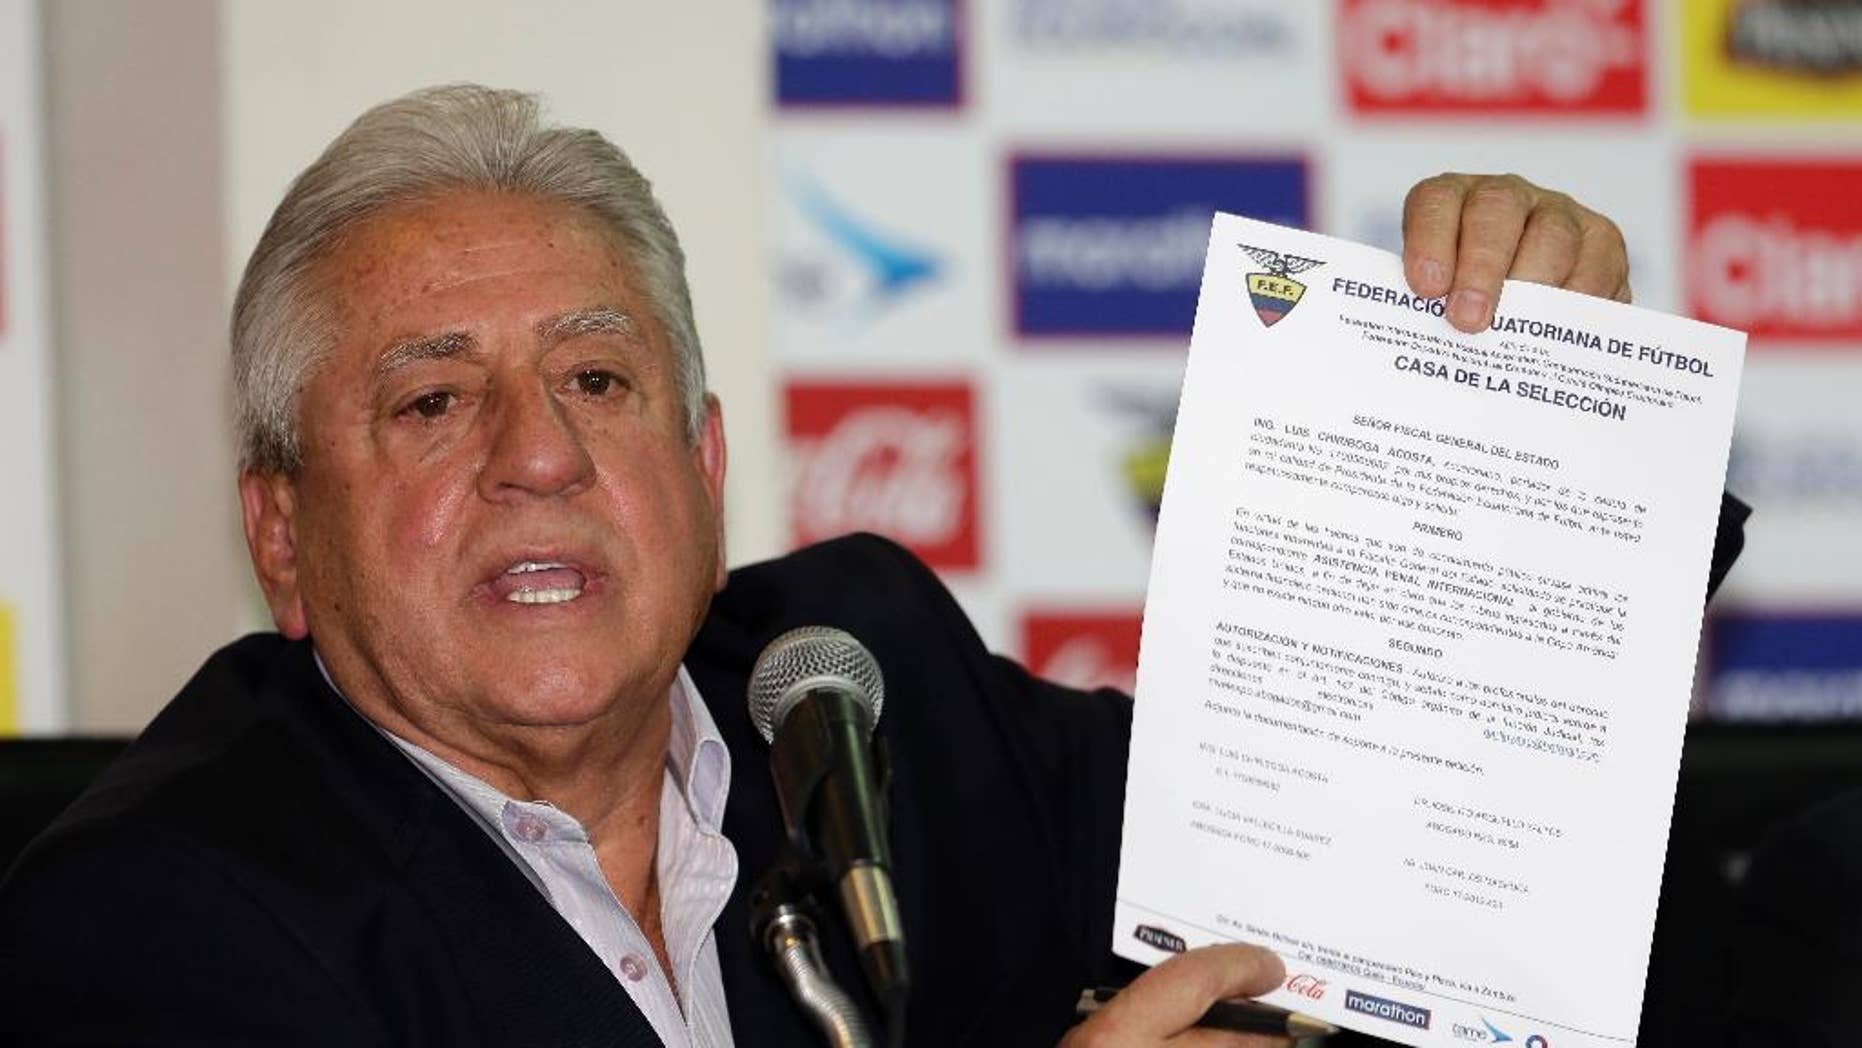 FILE - This June 1, 2015 file photo shows Luis Chiriboga, Ecuadorean Football Federation president, at a press conference in Quito. Chiriboga was convicted Friday, Nov. 18, 2016 of money laundering and given a 10-year sentence in a case tied to the corruption scandal at FIFA, the sport's international governing body. (AP Photo/Dolores Ochoa, File)